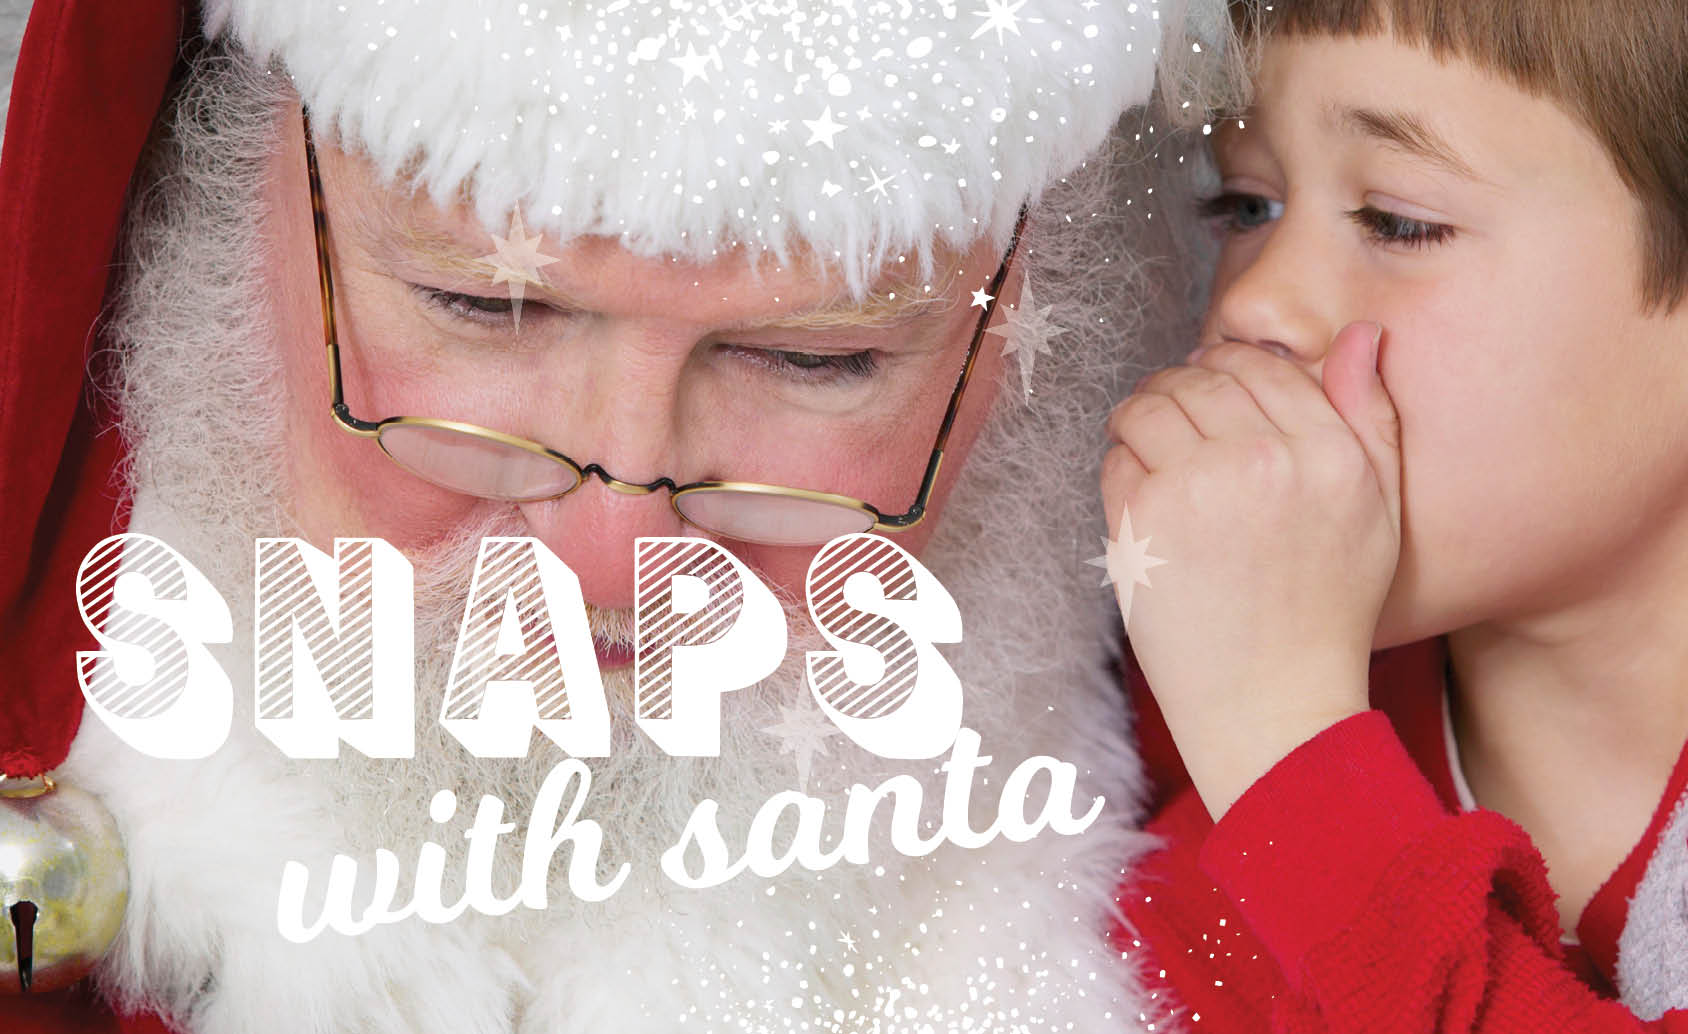 CH4806_Xmas 2019_Web Tiles_Snaps with Santa_844x517px